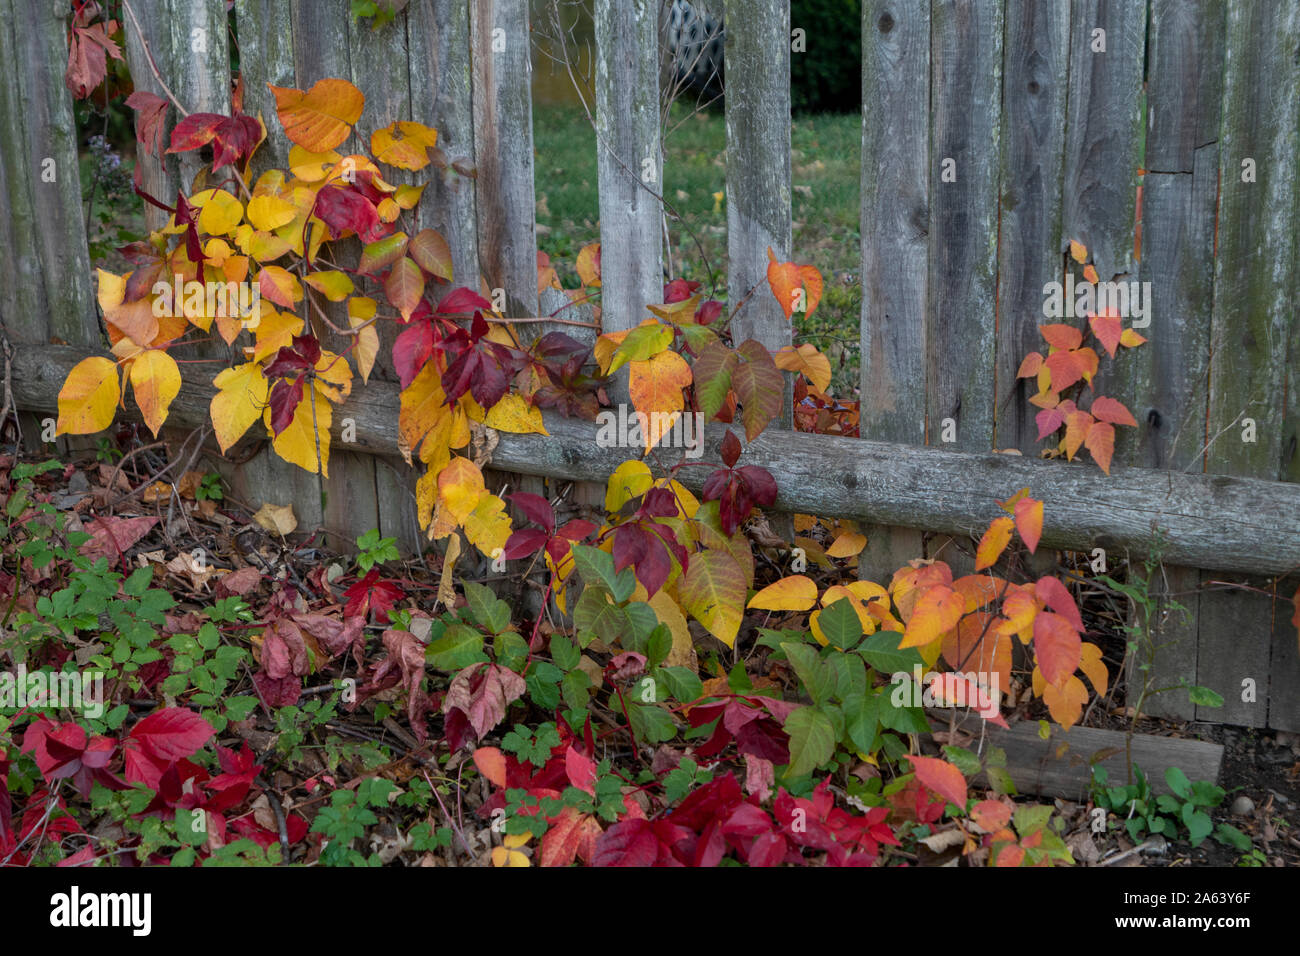 Fall foliage on an old wooden fence in New England Stock Photo